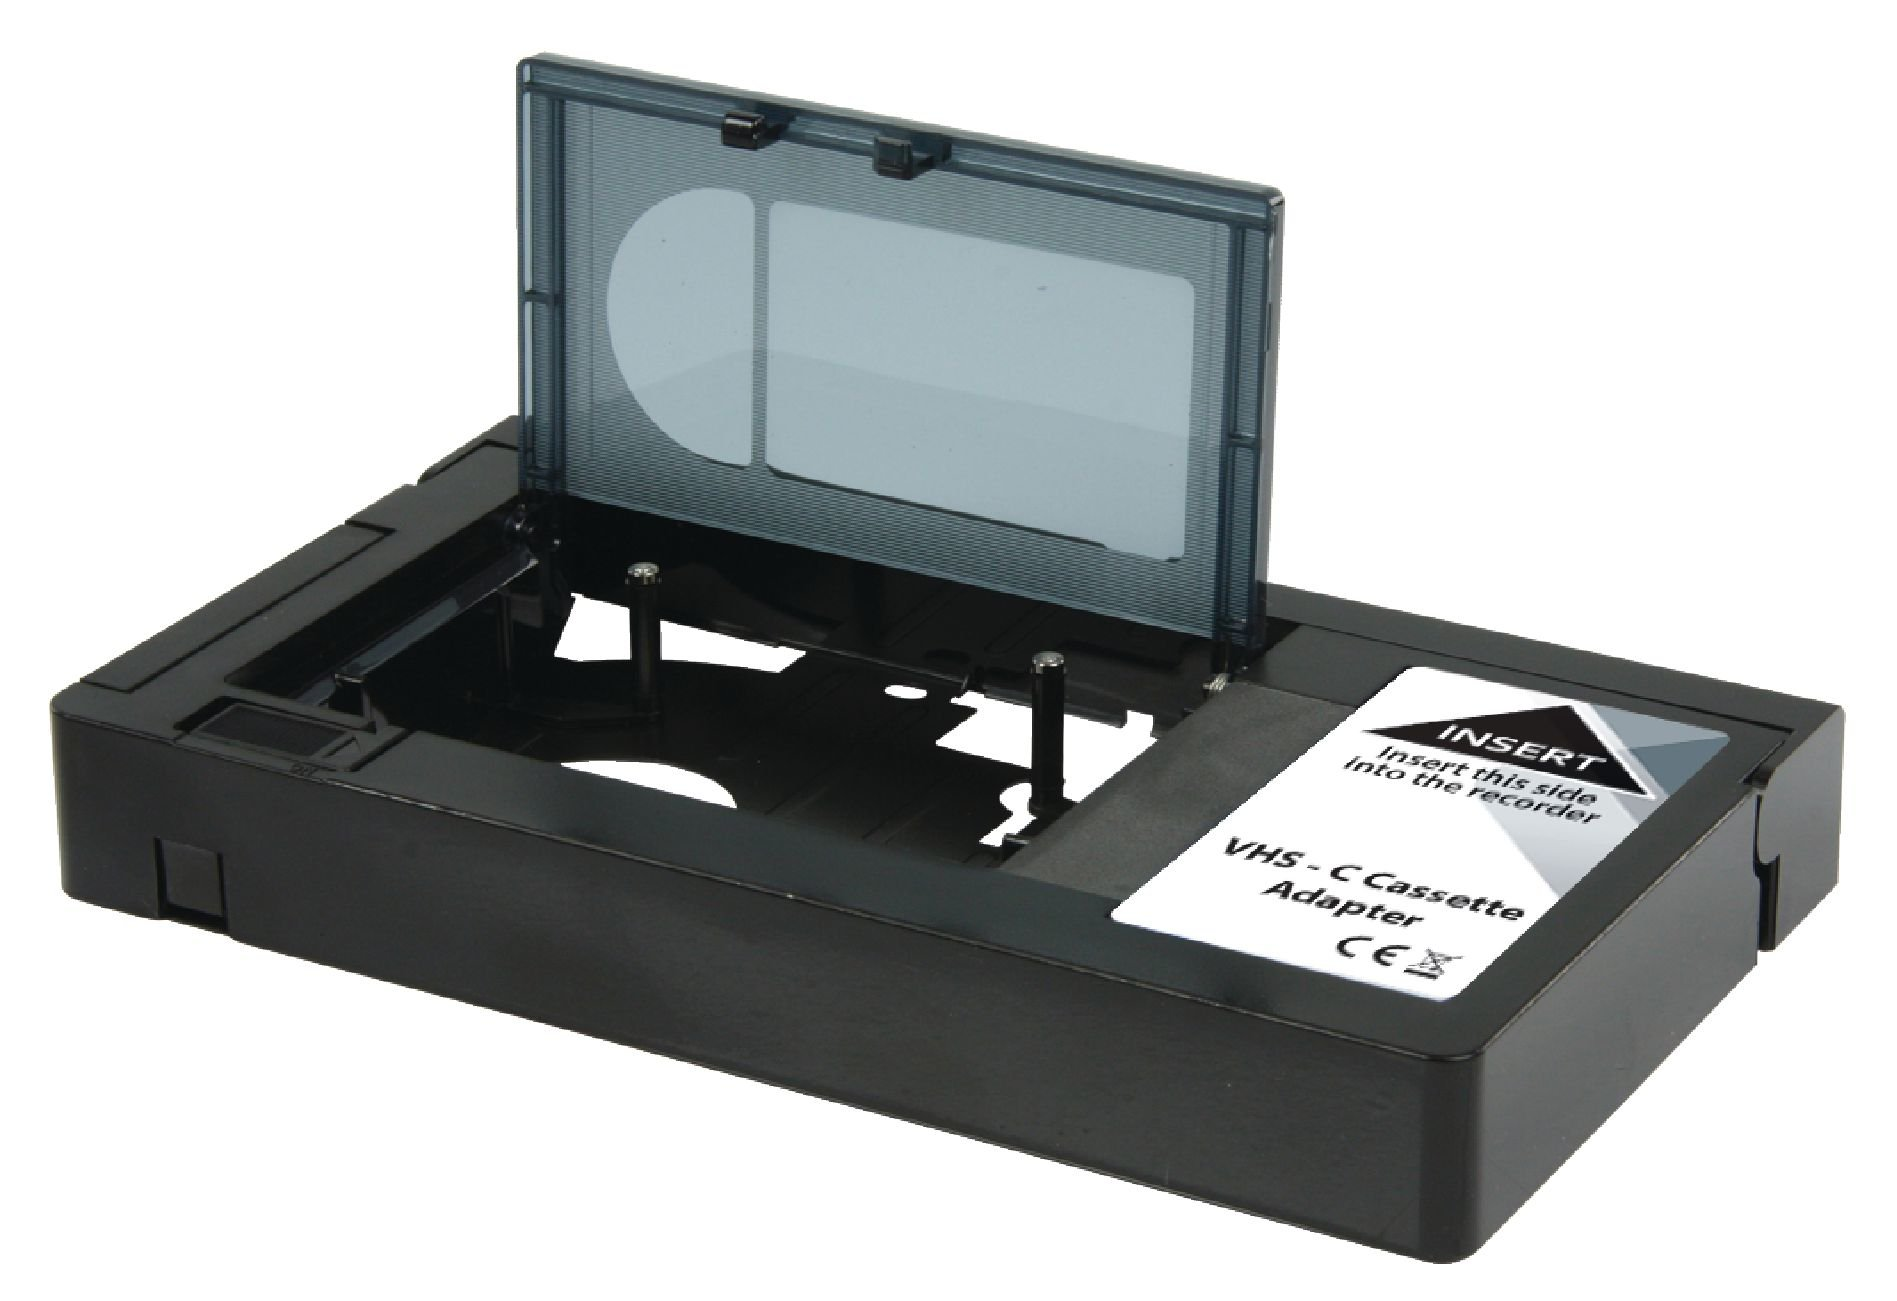 Konig VHS-C Cassette Adapter [KN-VHS-C-ADAPT] - Not Compatible with 8mm/MiniDV by Konig